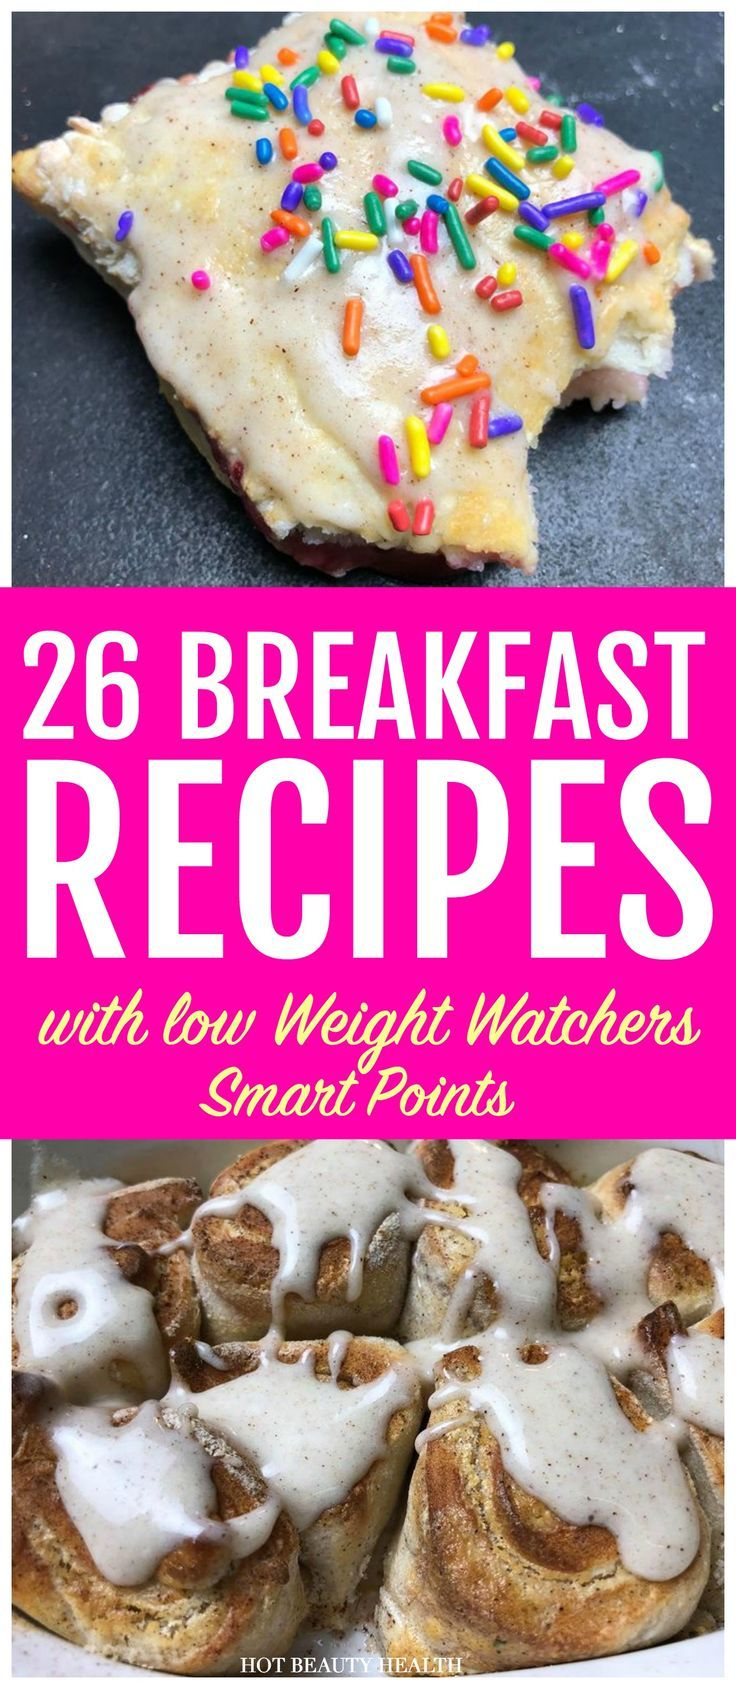 26 Weight Watchers Breakfast Recipes w/ Smartpoints